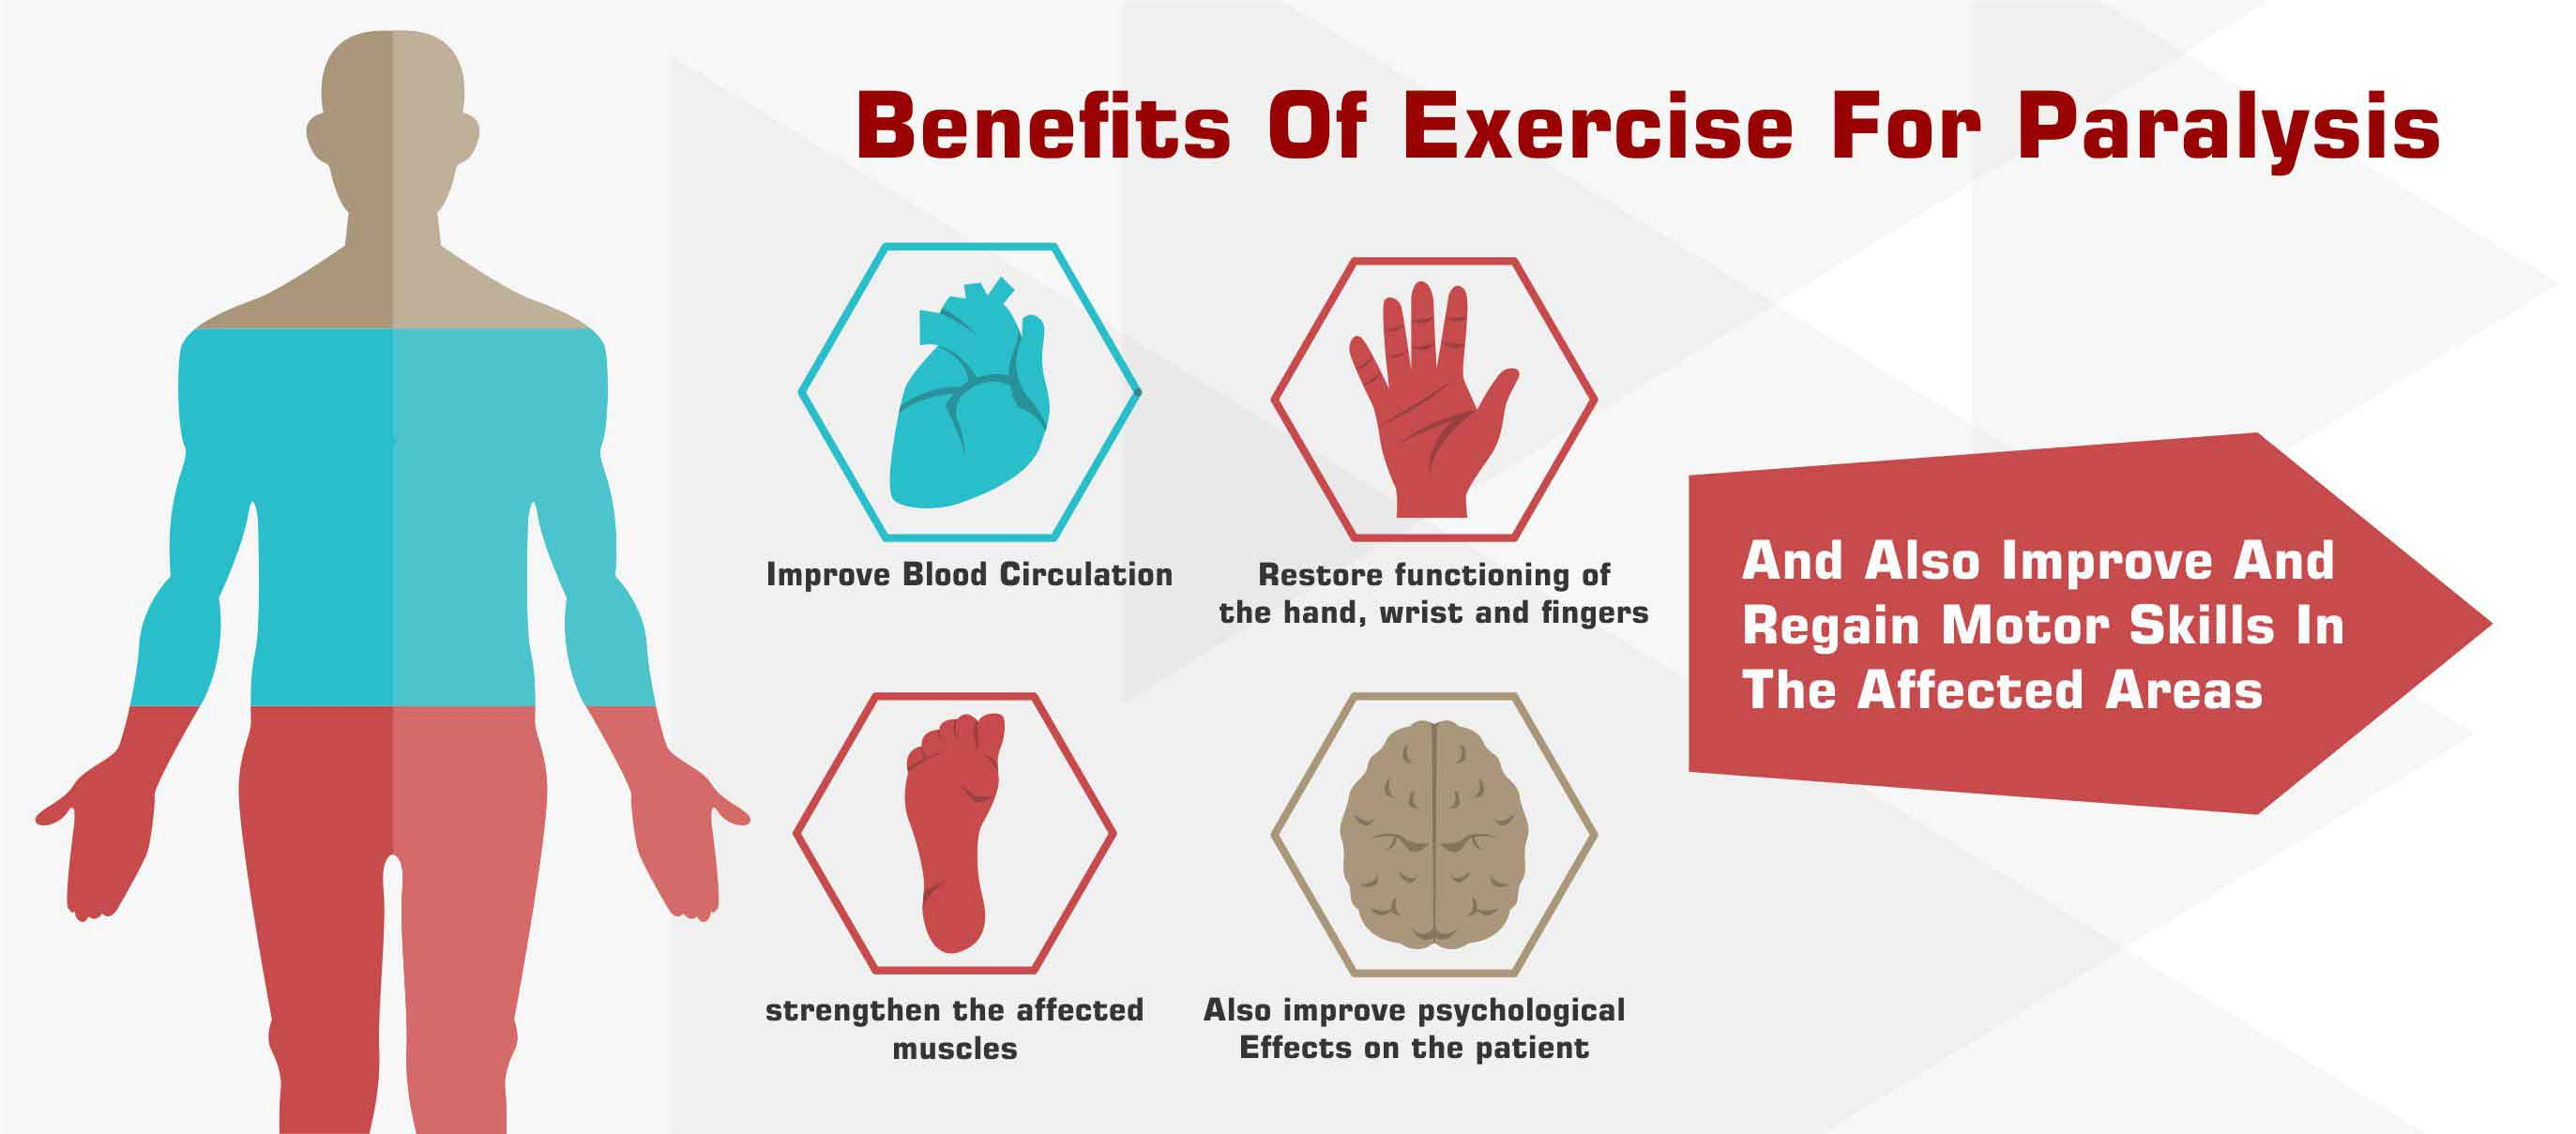 Exercise Equipment For Paralysis